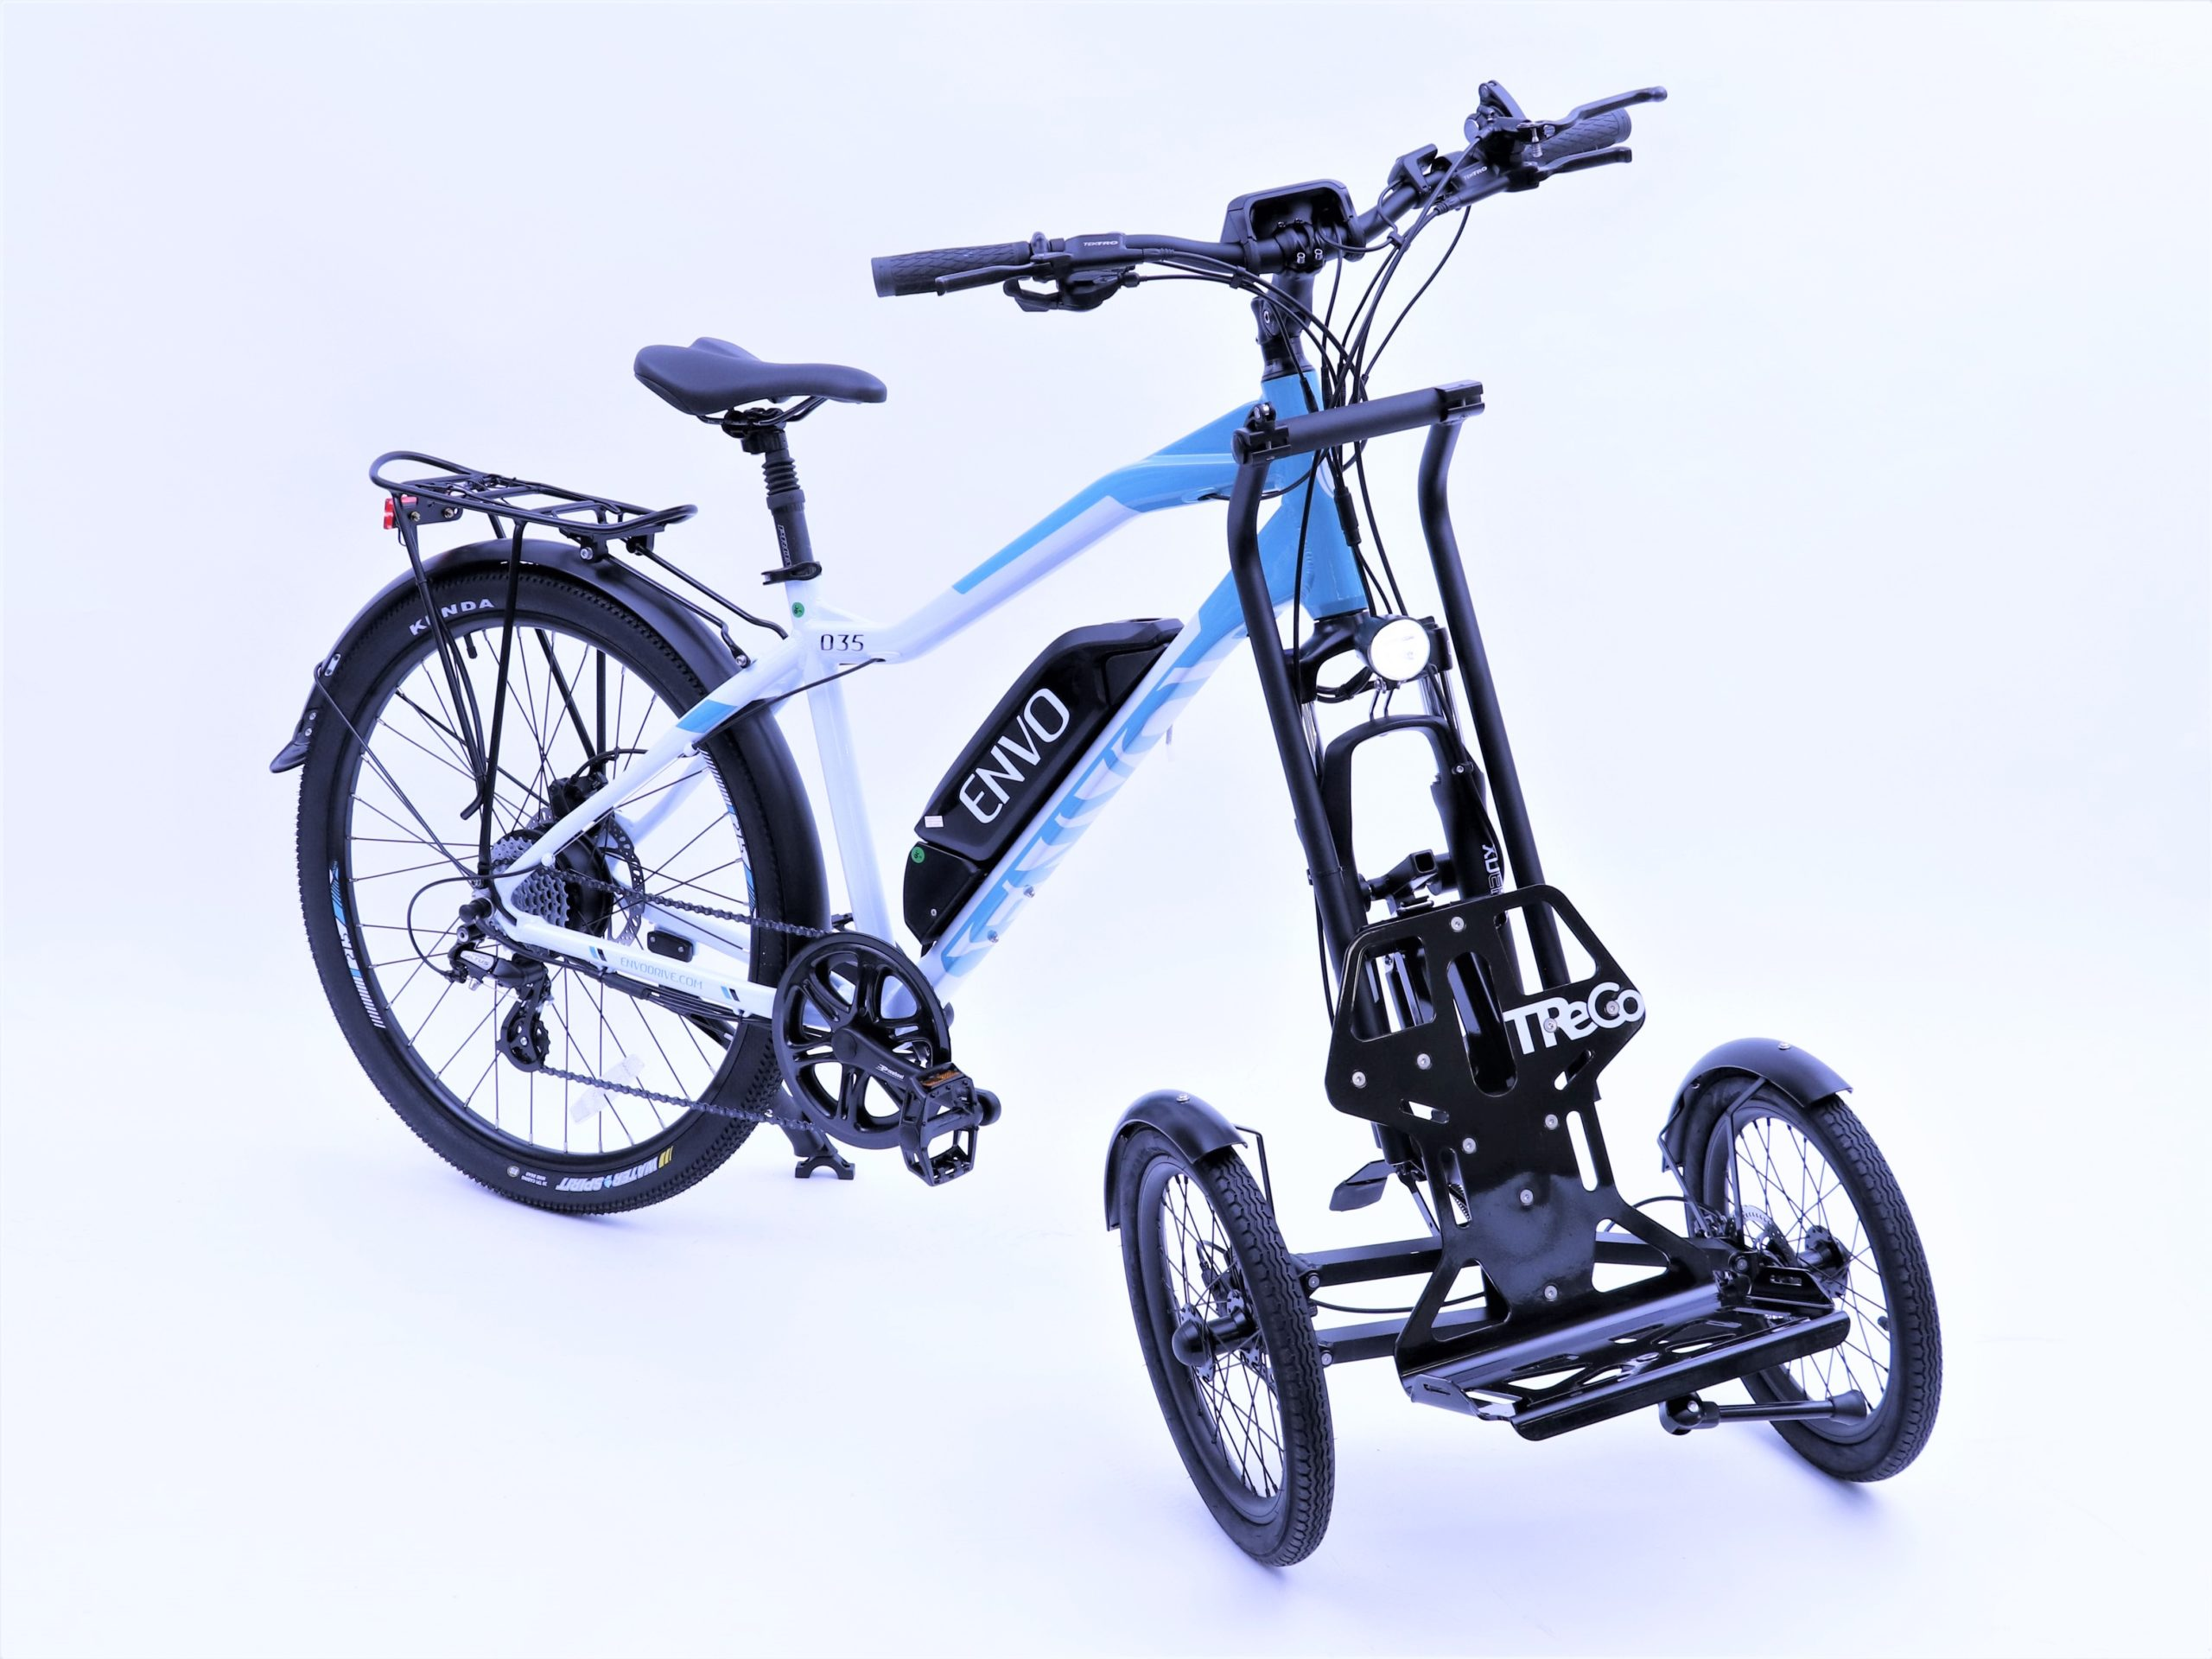 Envo D35 ebike with a Trego Trolley